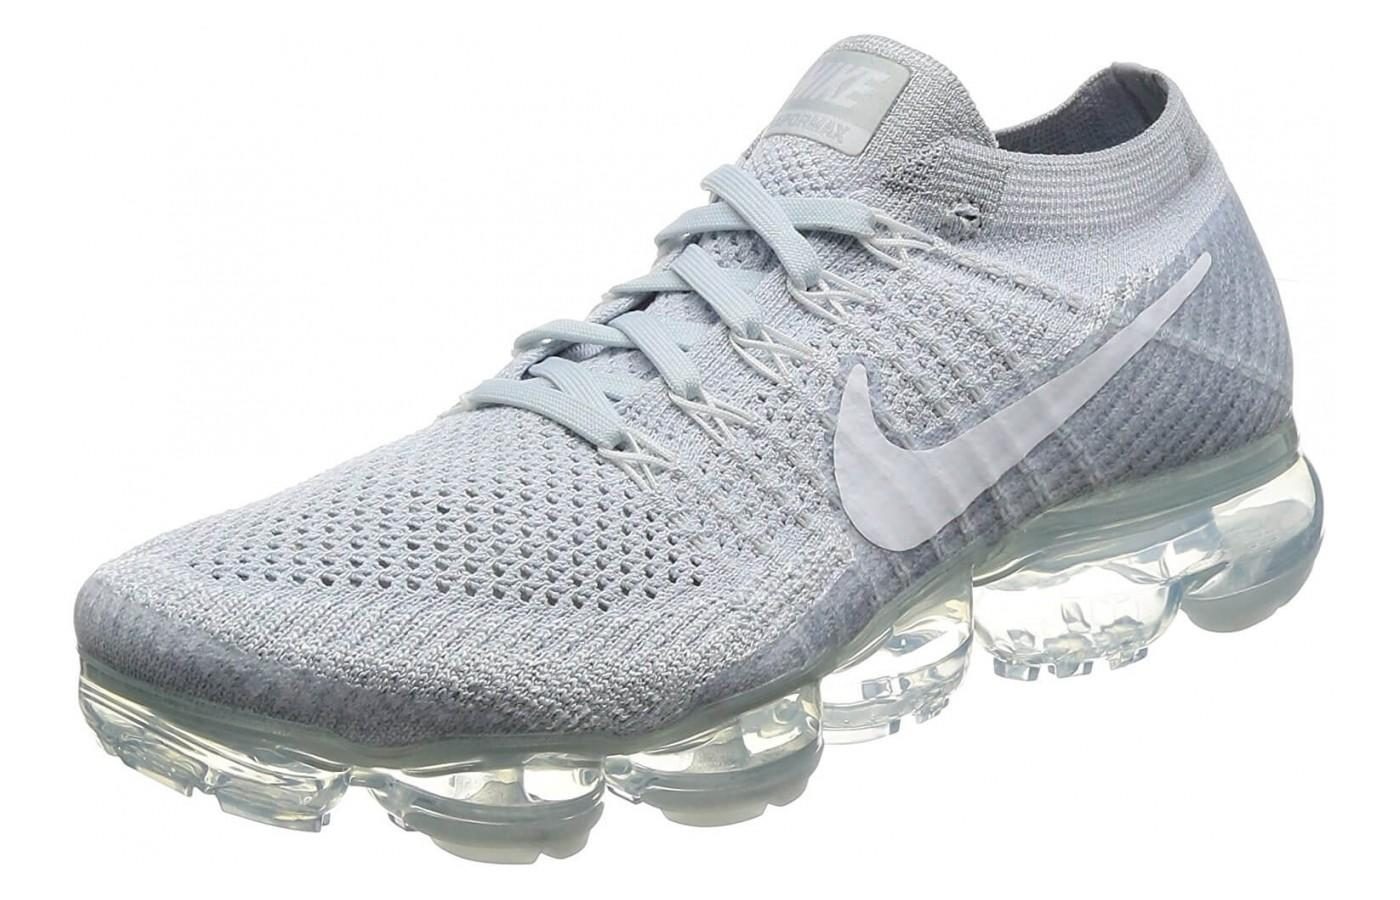 80329d43880a0 Nike Air Vapormax Flyknit. The platinum coloring and unique design help  this shoe stand out.